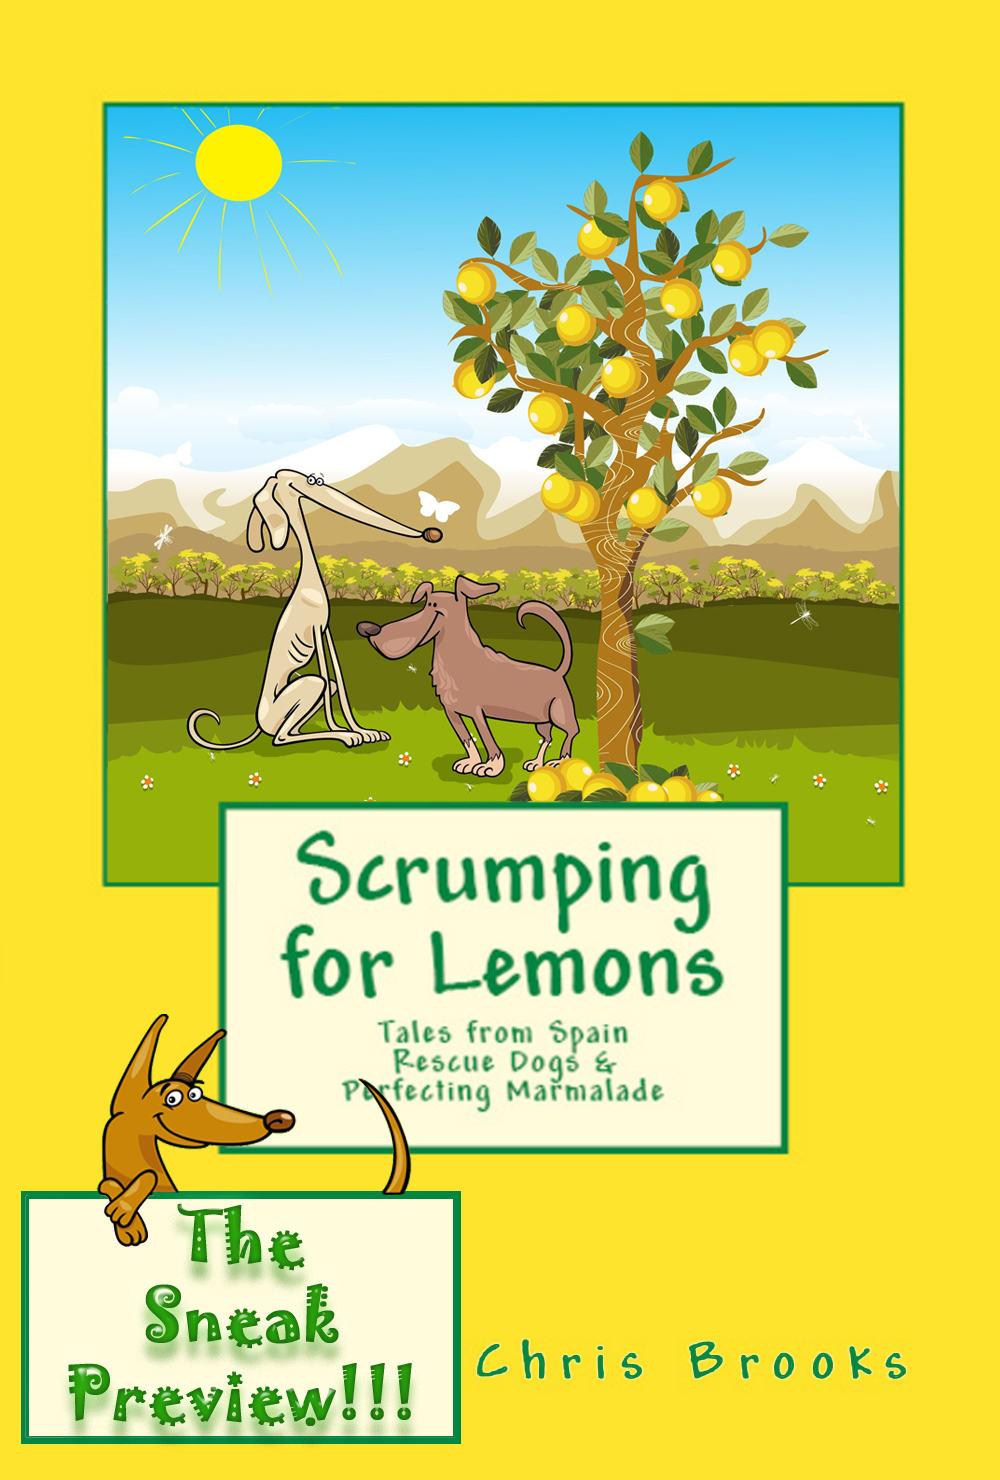 Scrumping for Lemons. The Sneak Preview